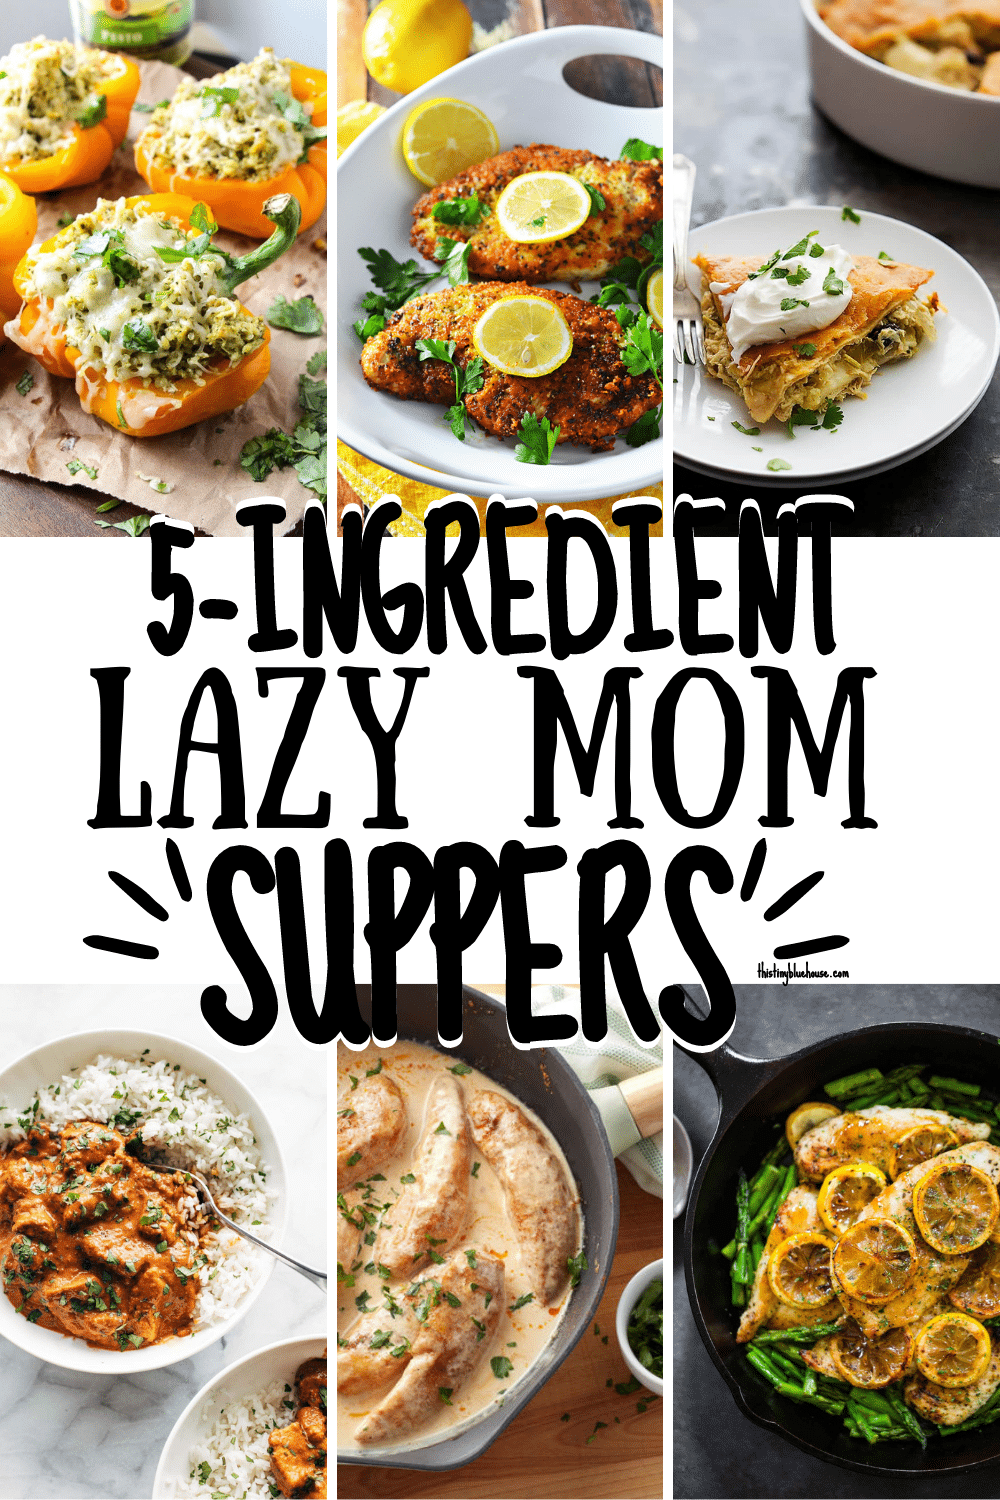 Best Lazy Mom Dinners (Quick & Easy 5-Ingredient Dinners)